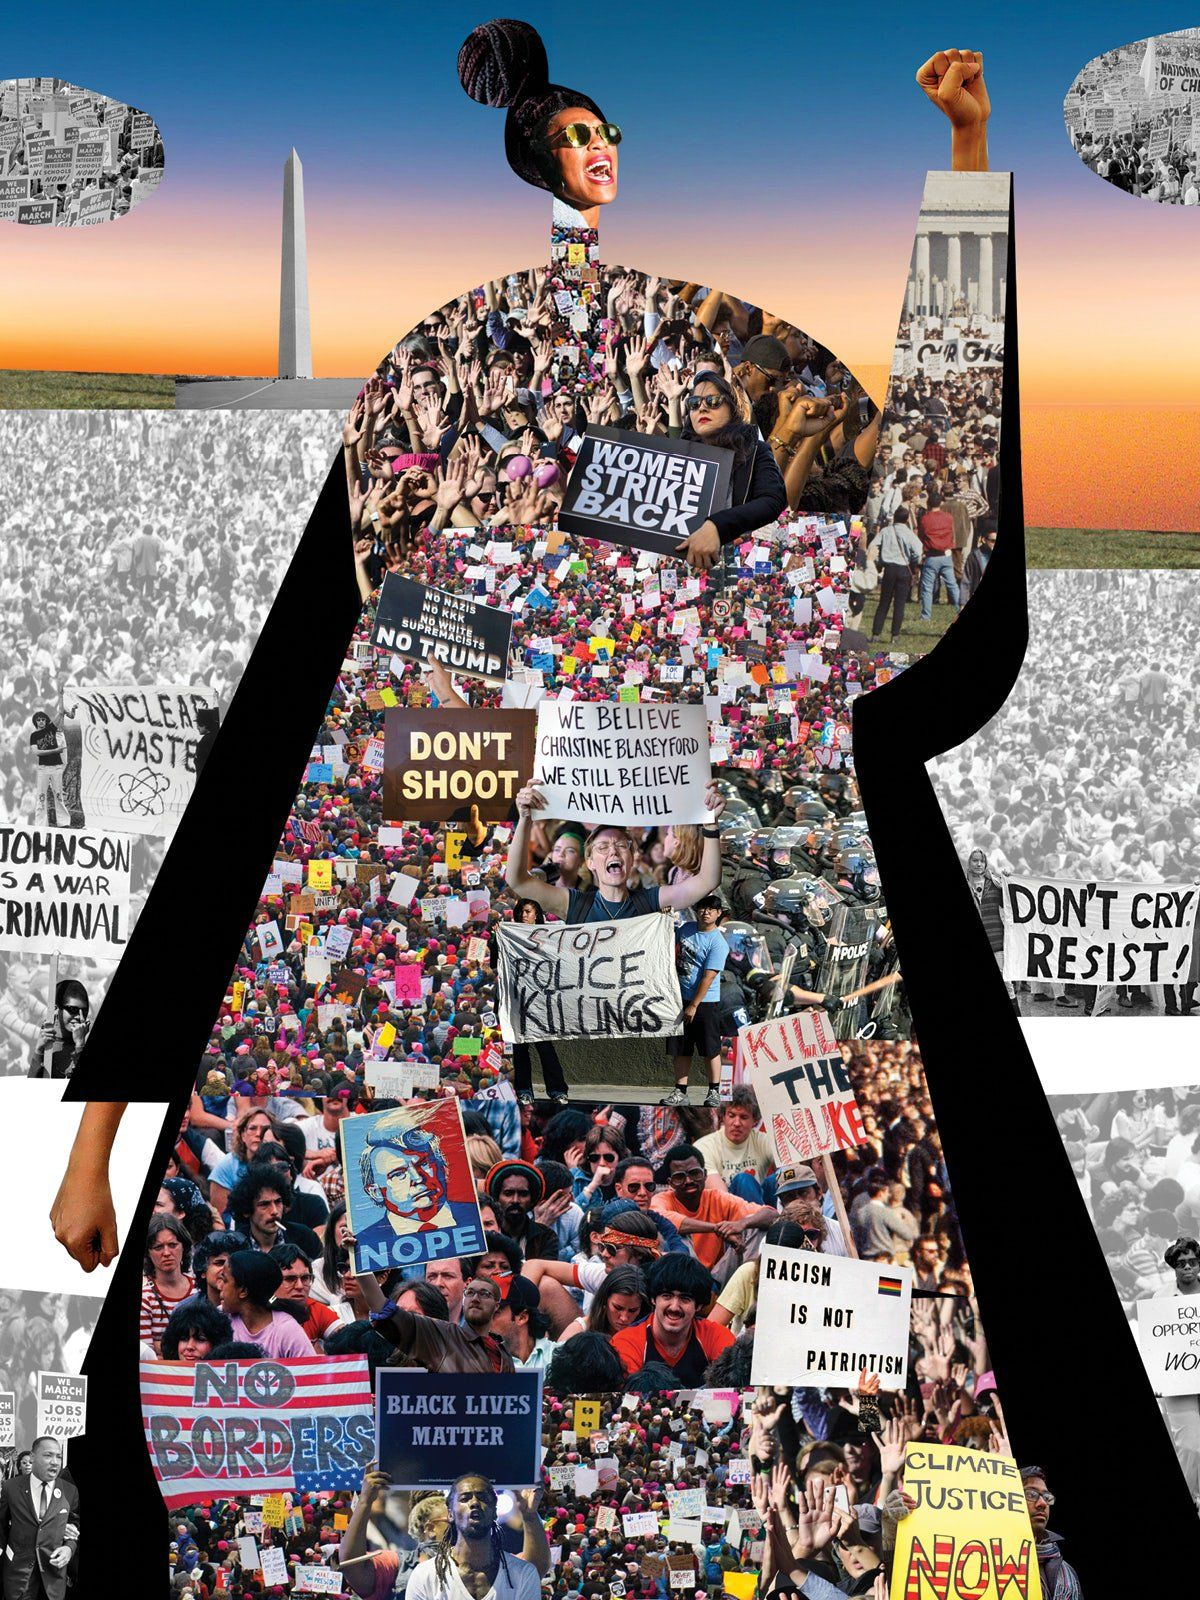 How to build a powerful protest movement protest